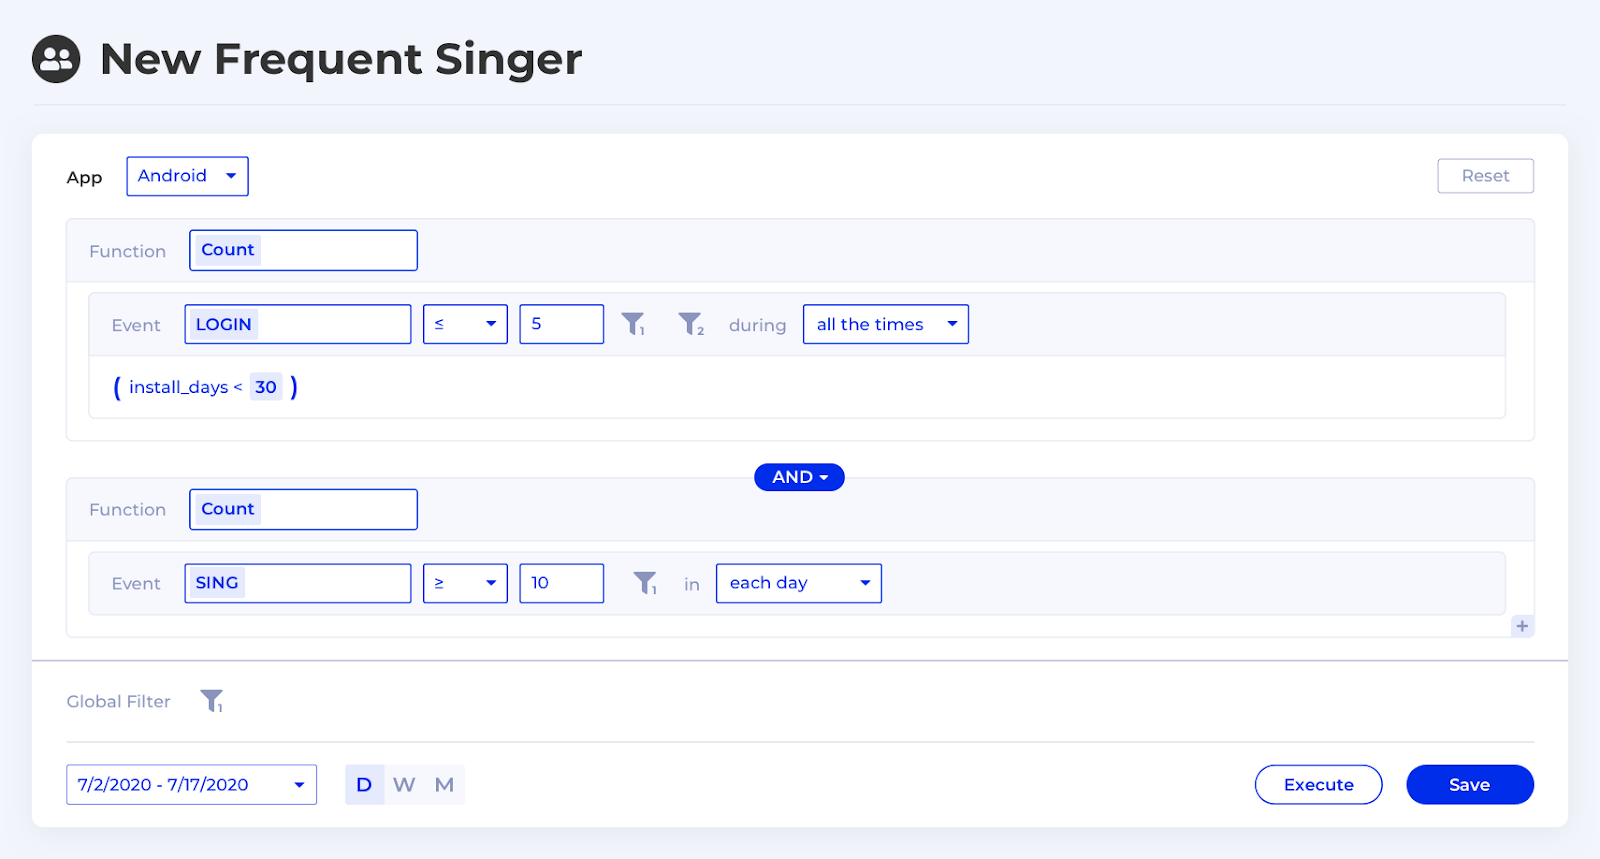 Kubit Cohort for Frequent Singer